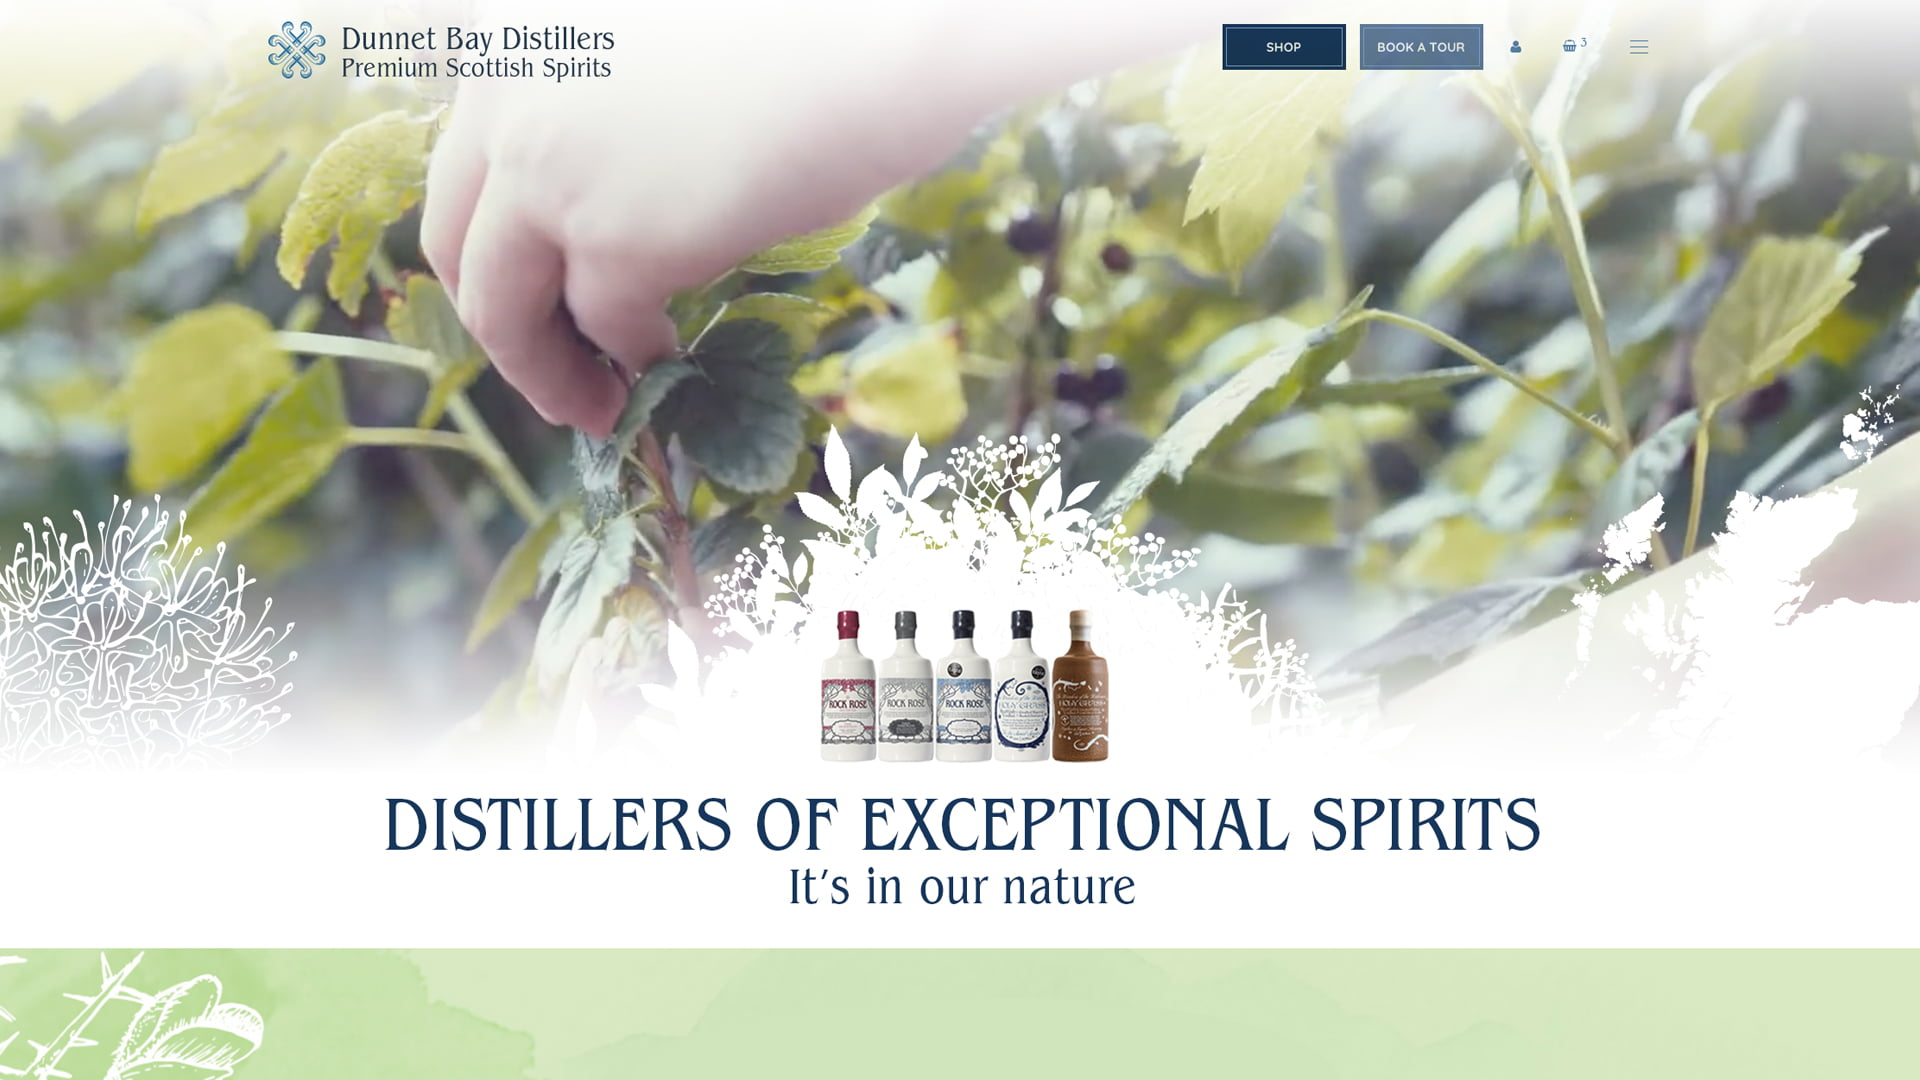 Dunnet Bay Distillers Website